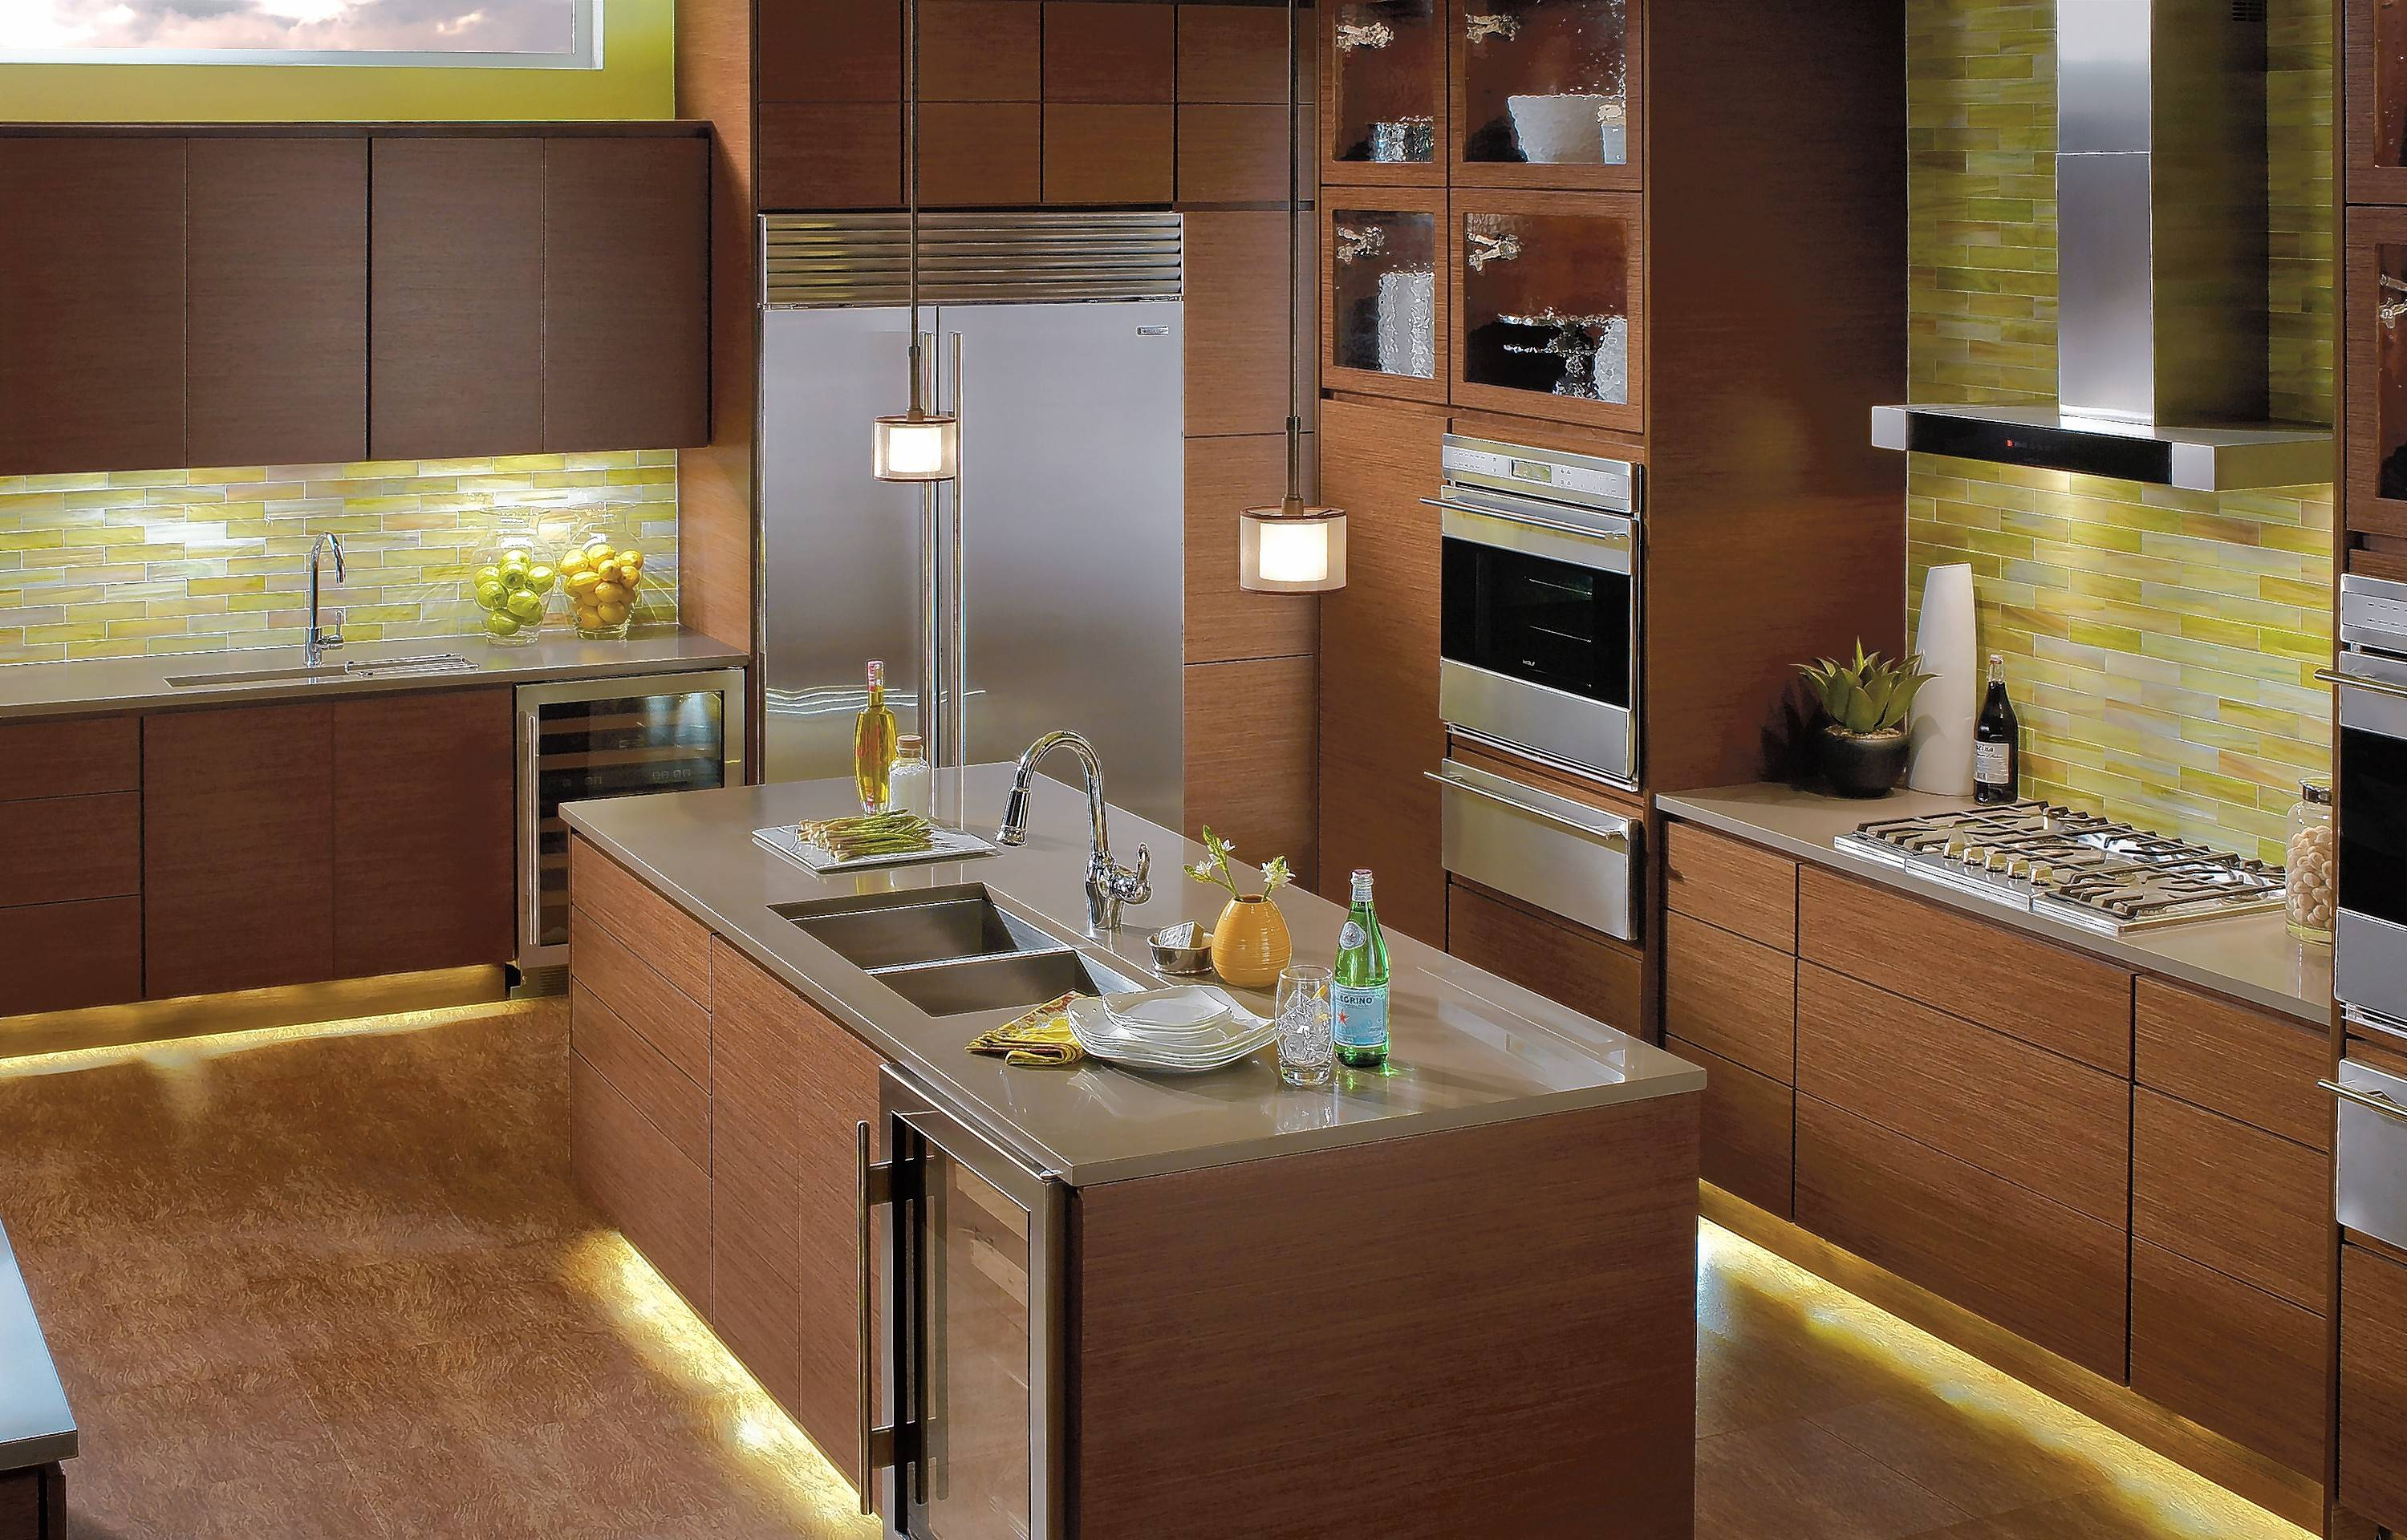 In The Kitchen, Supplement Overhead Lighting Under Cabinet Lighting And  Inside Cabinet Lighting